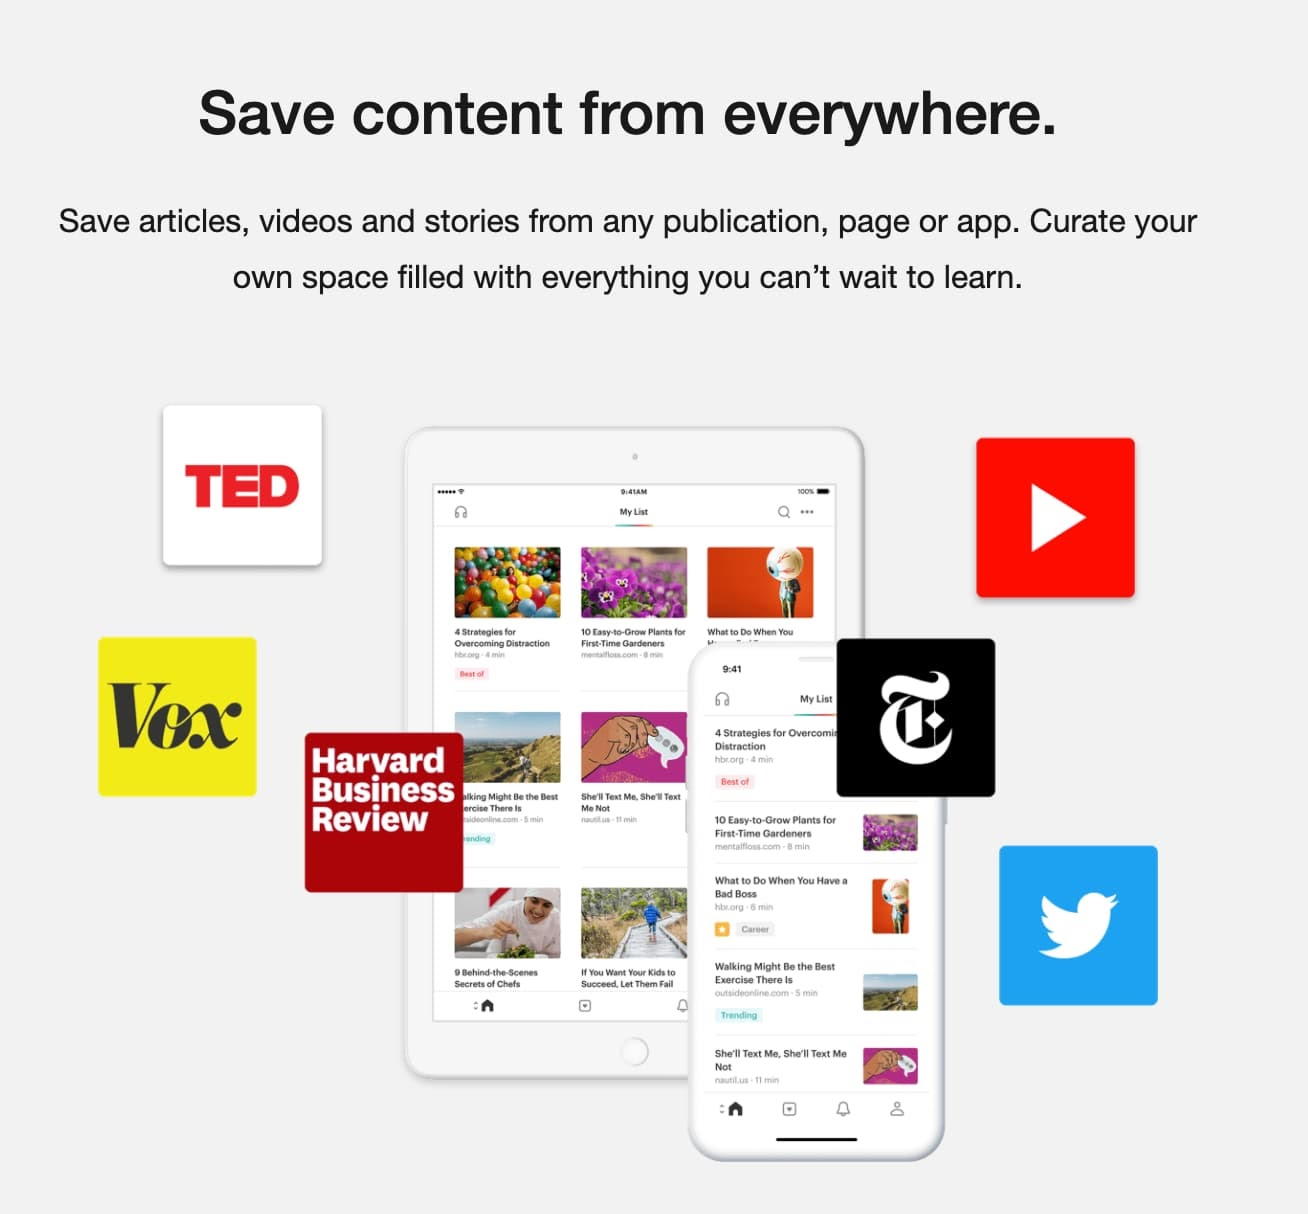 Content curation tool Pocket